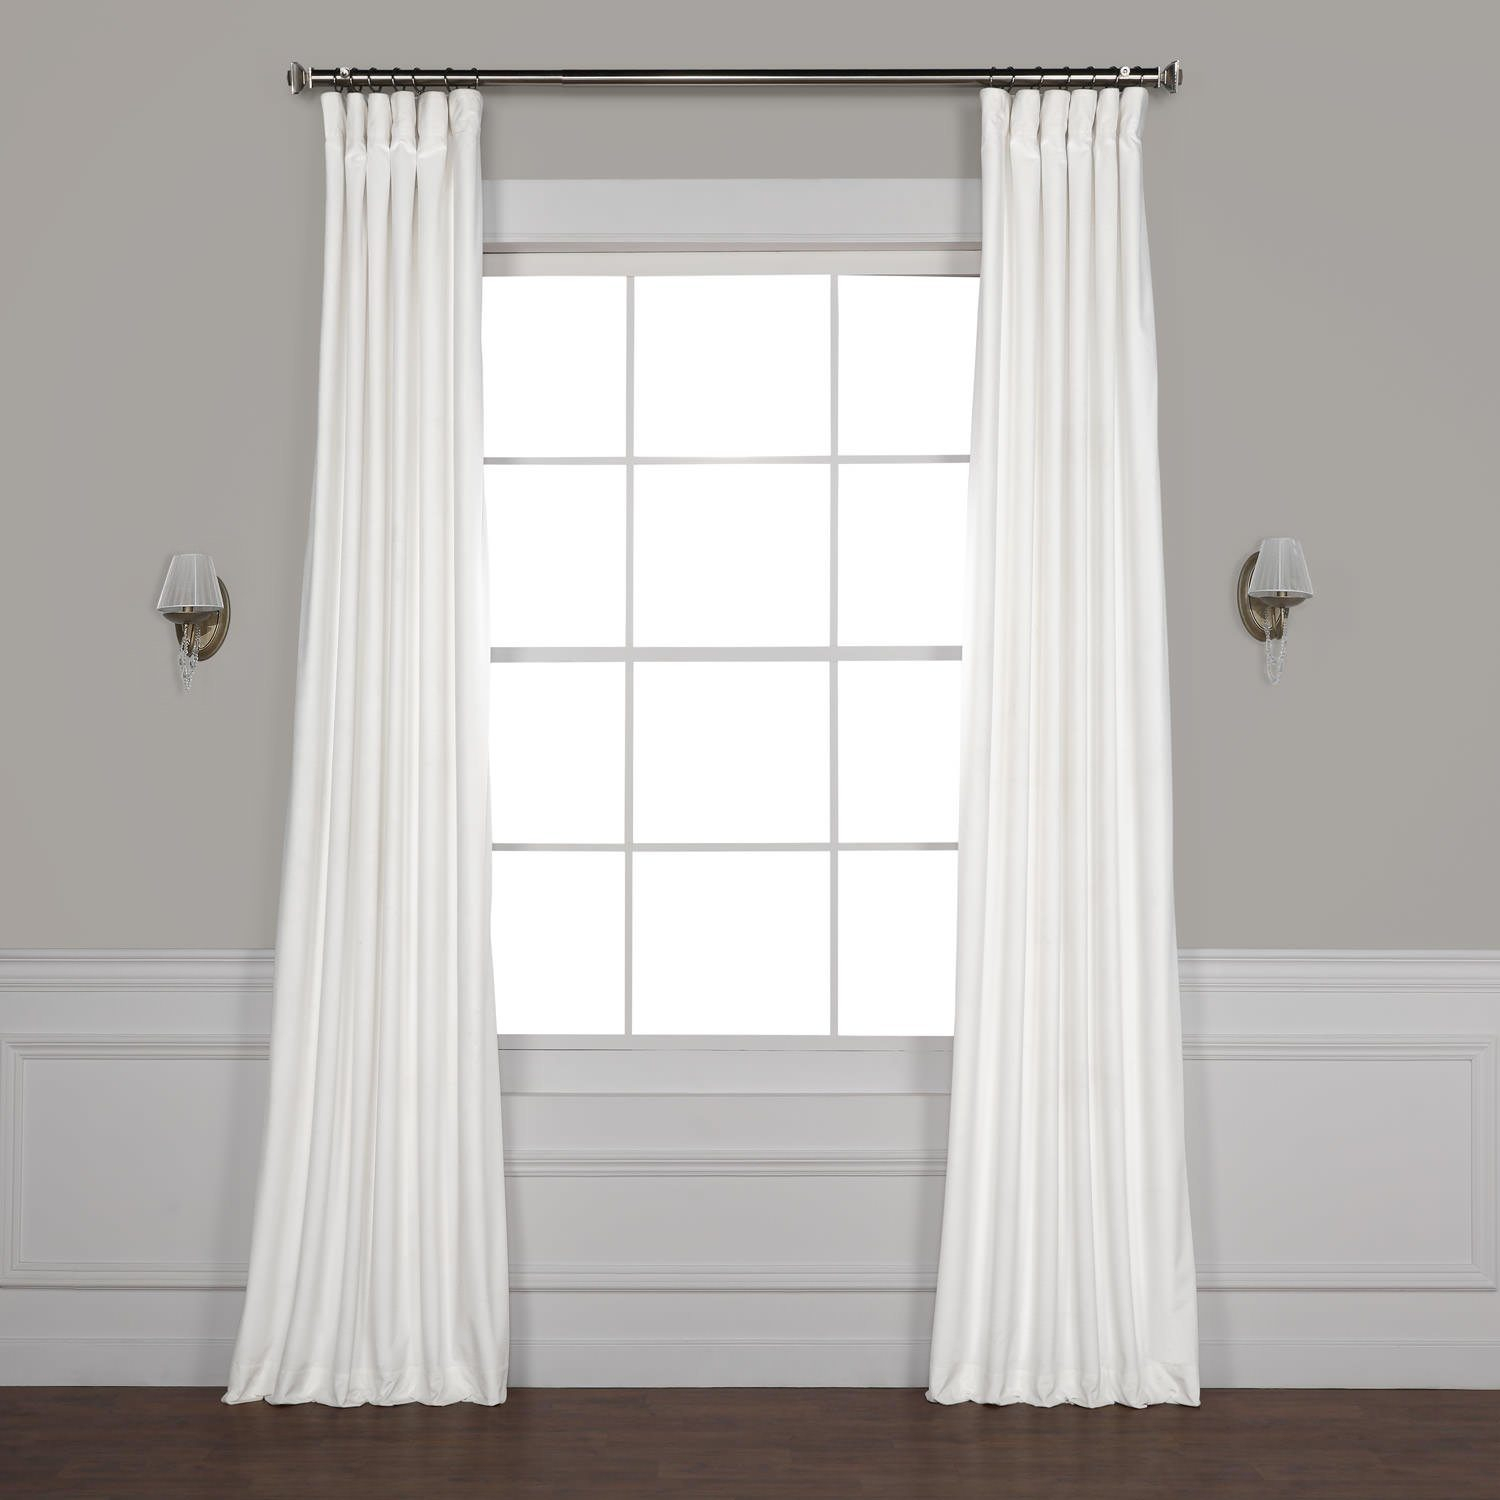 🔮 Meant To Be 🔮 Livia Riverton Solid Heritage Plush Velvet For Heritage Plush Velvet Single Curtain Panels (View 13 of 20)